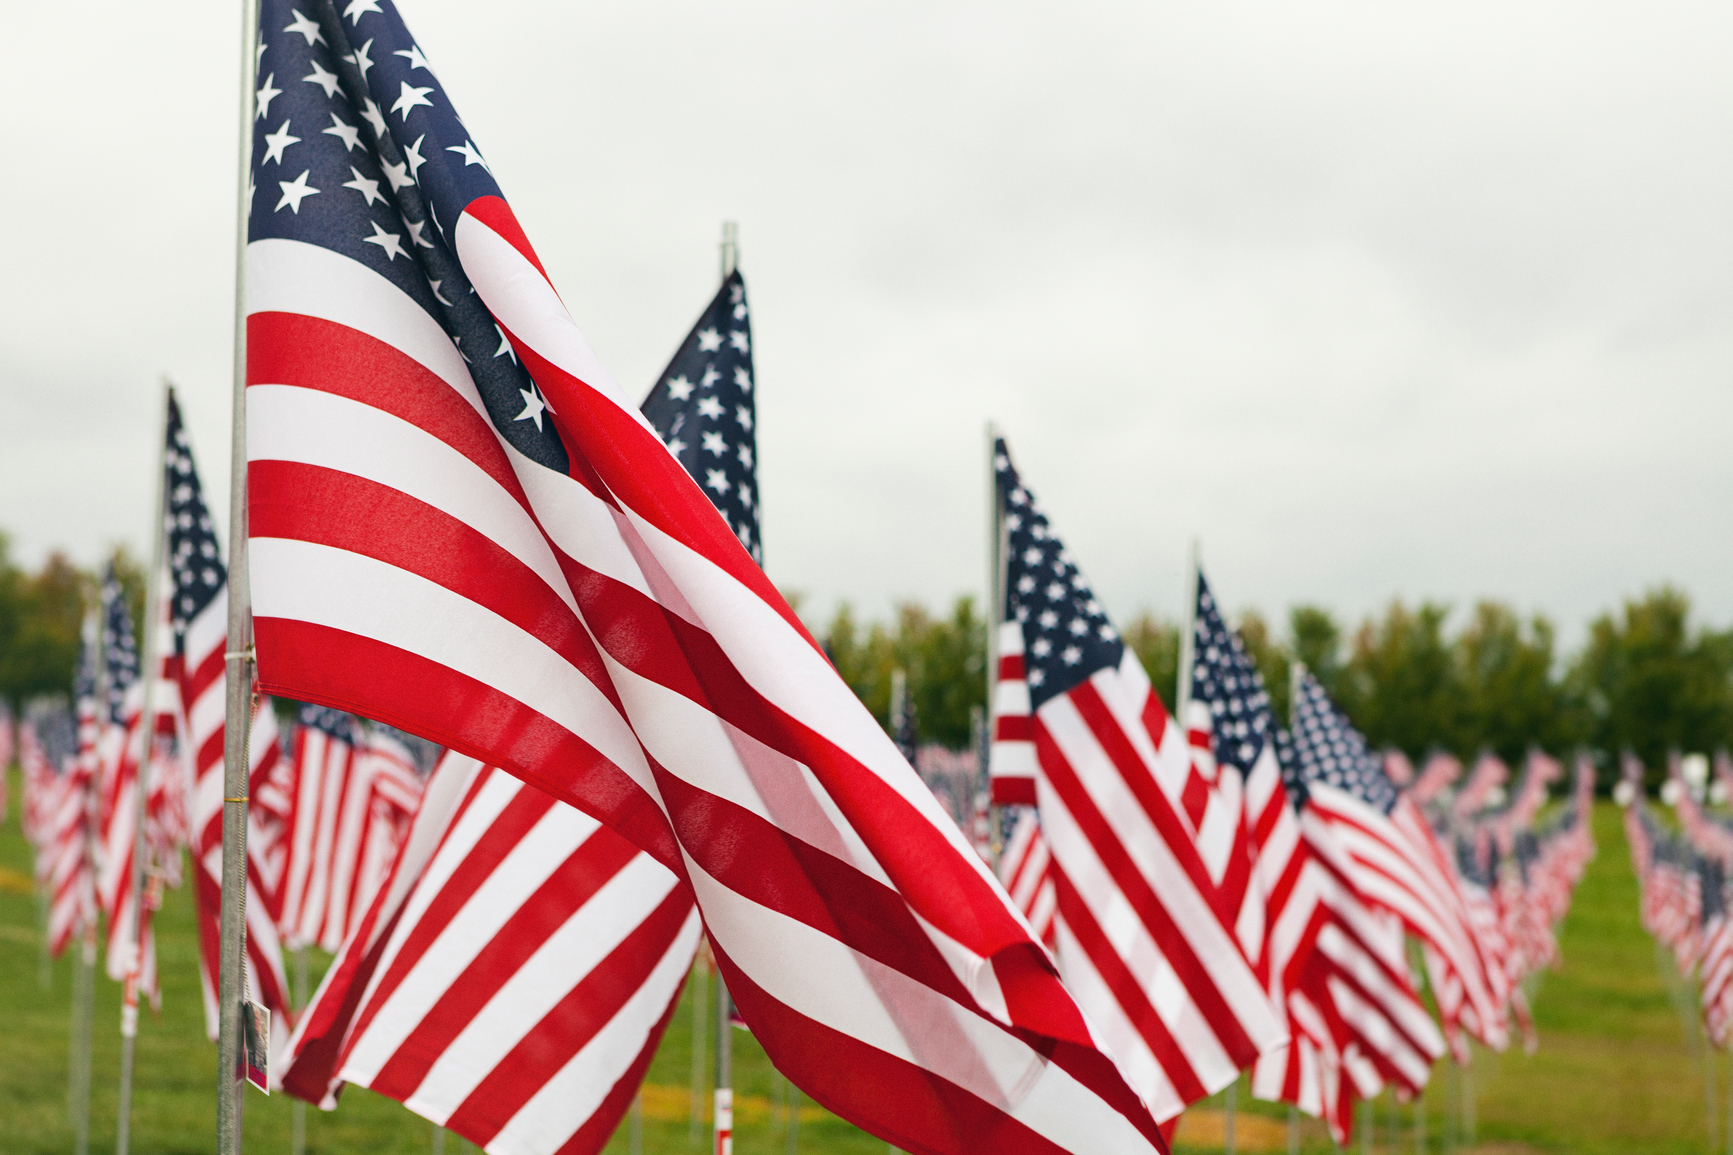 7,000 United States flags placed as a memorial display in Forest Park in St. Louis over the week prior to 9/11/2016.  A tribute to those who died in military service since 2001.